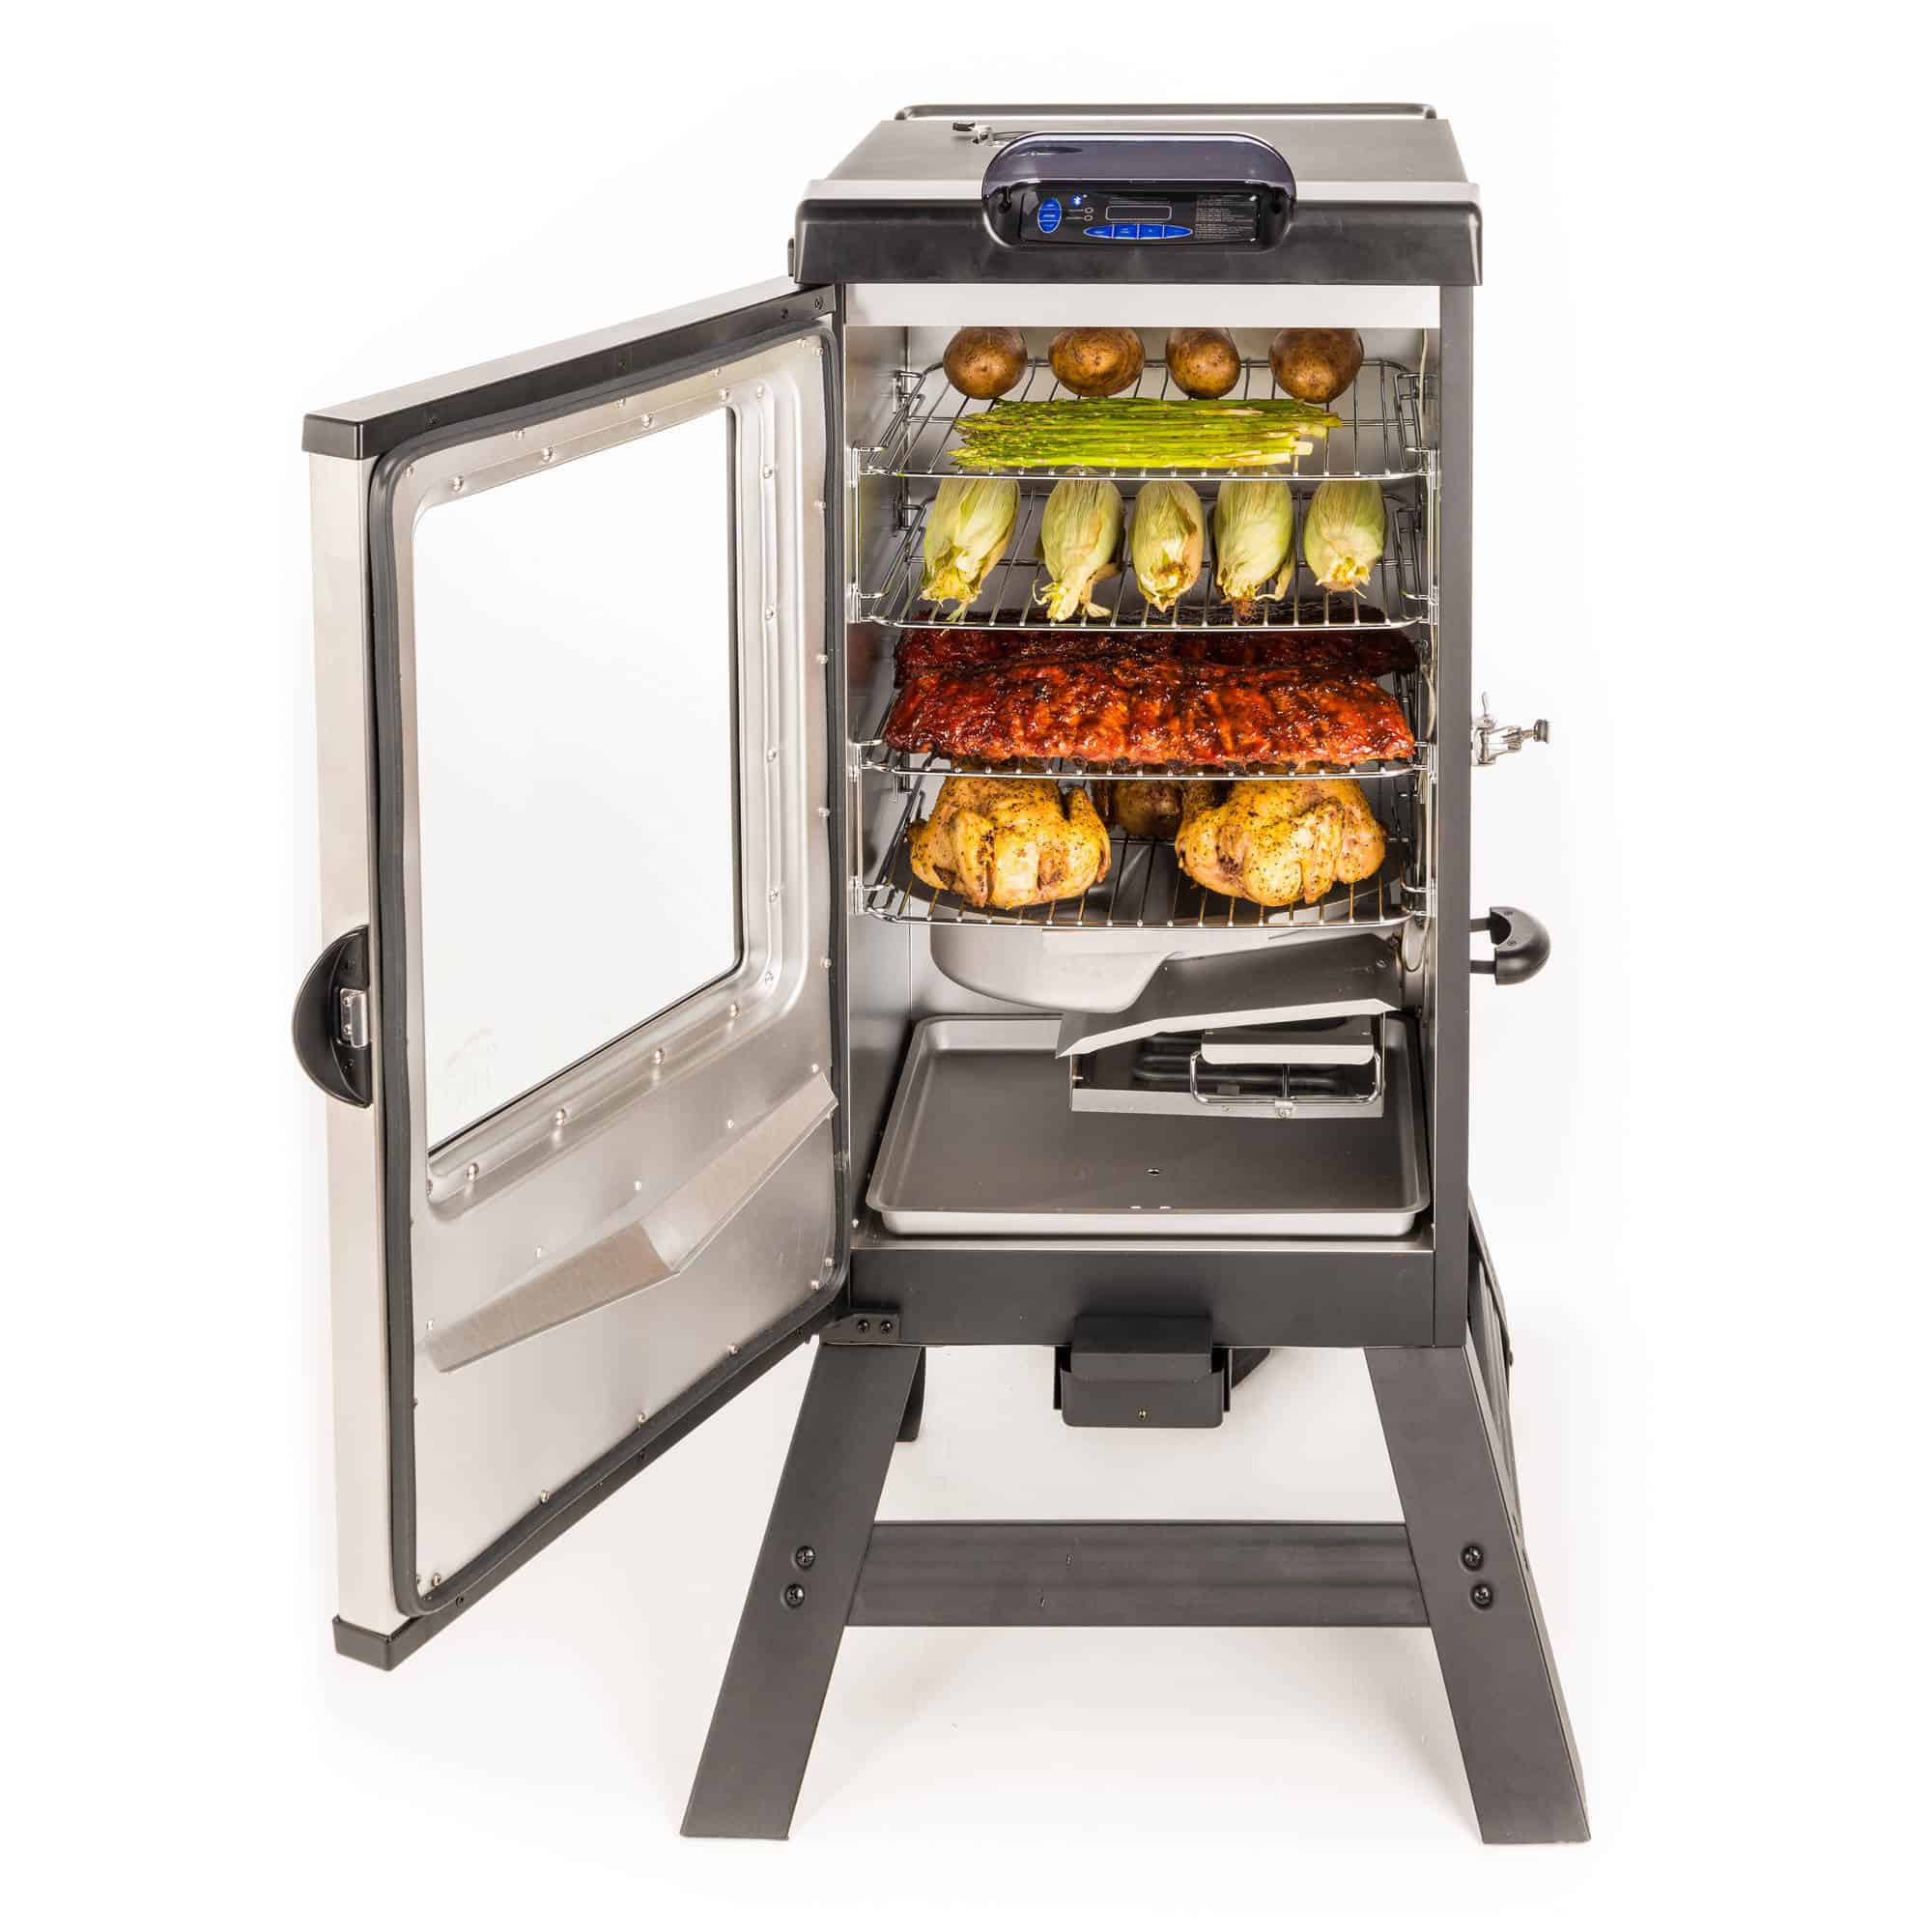 Indoor Grilling: Featuring the Masterbuilt Electric Smoker